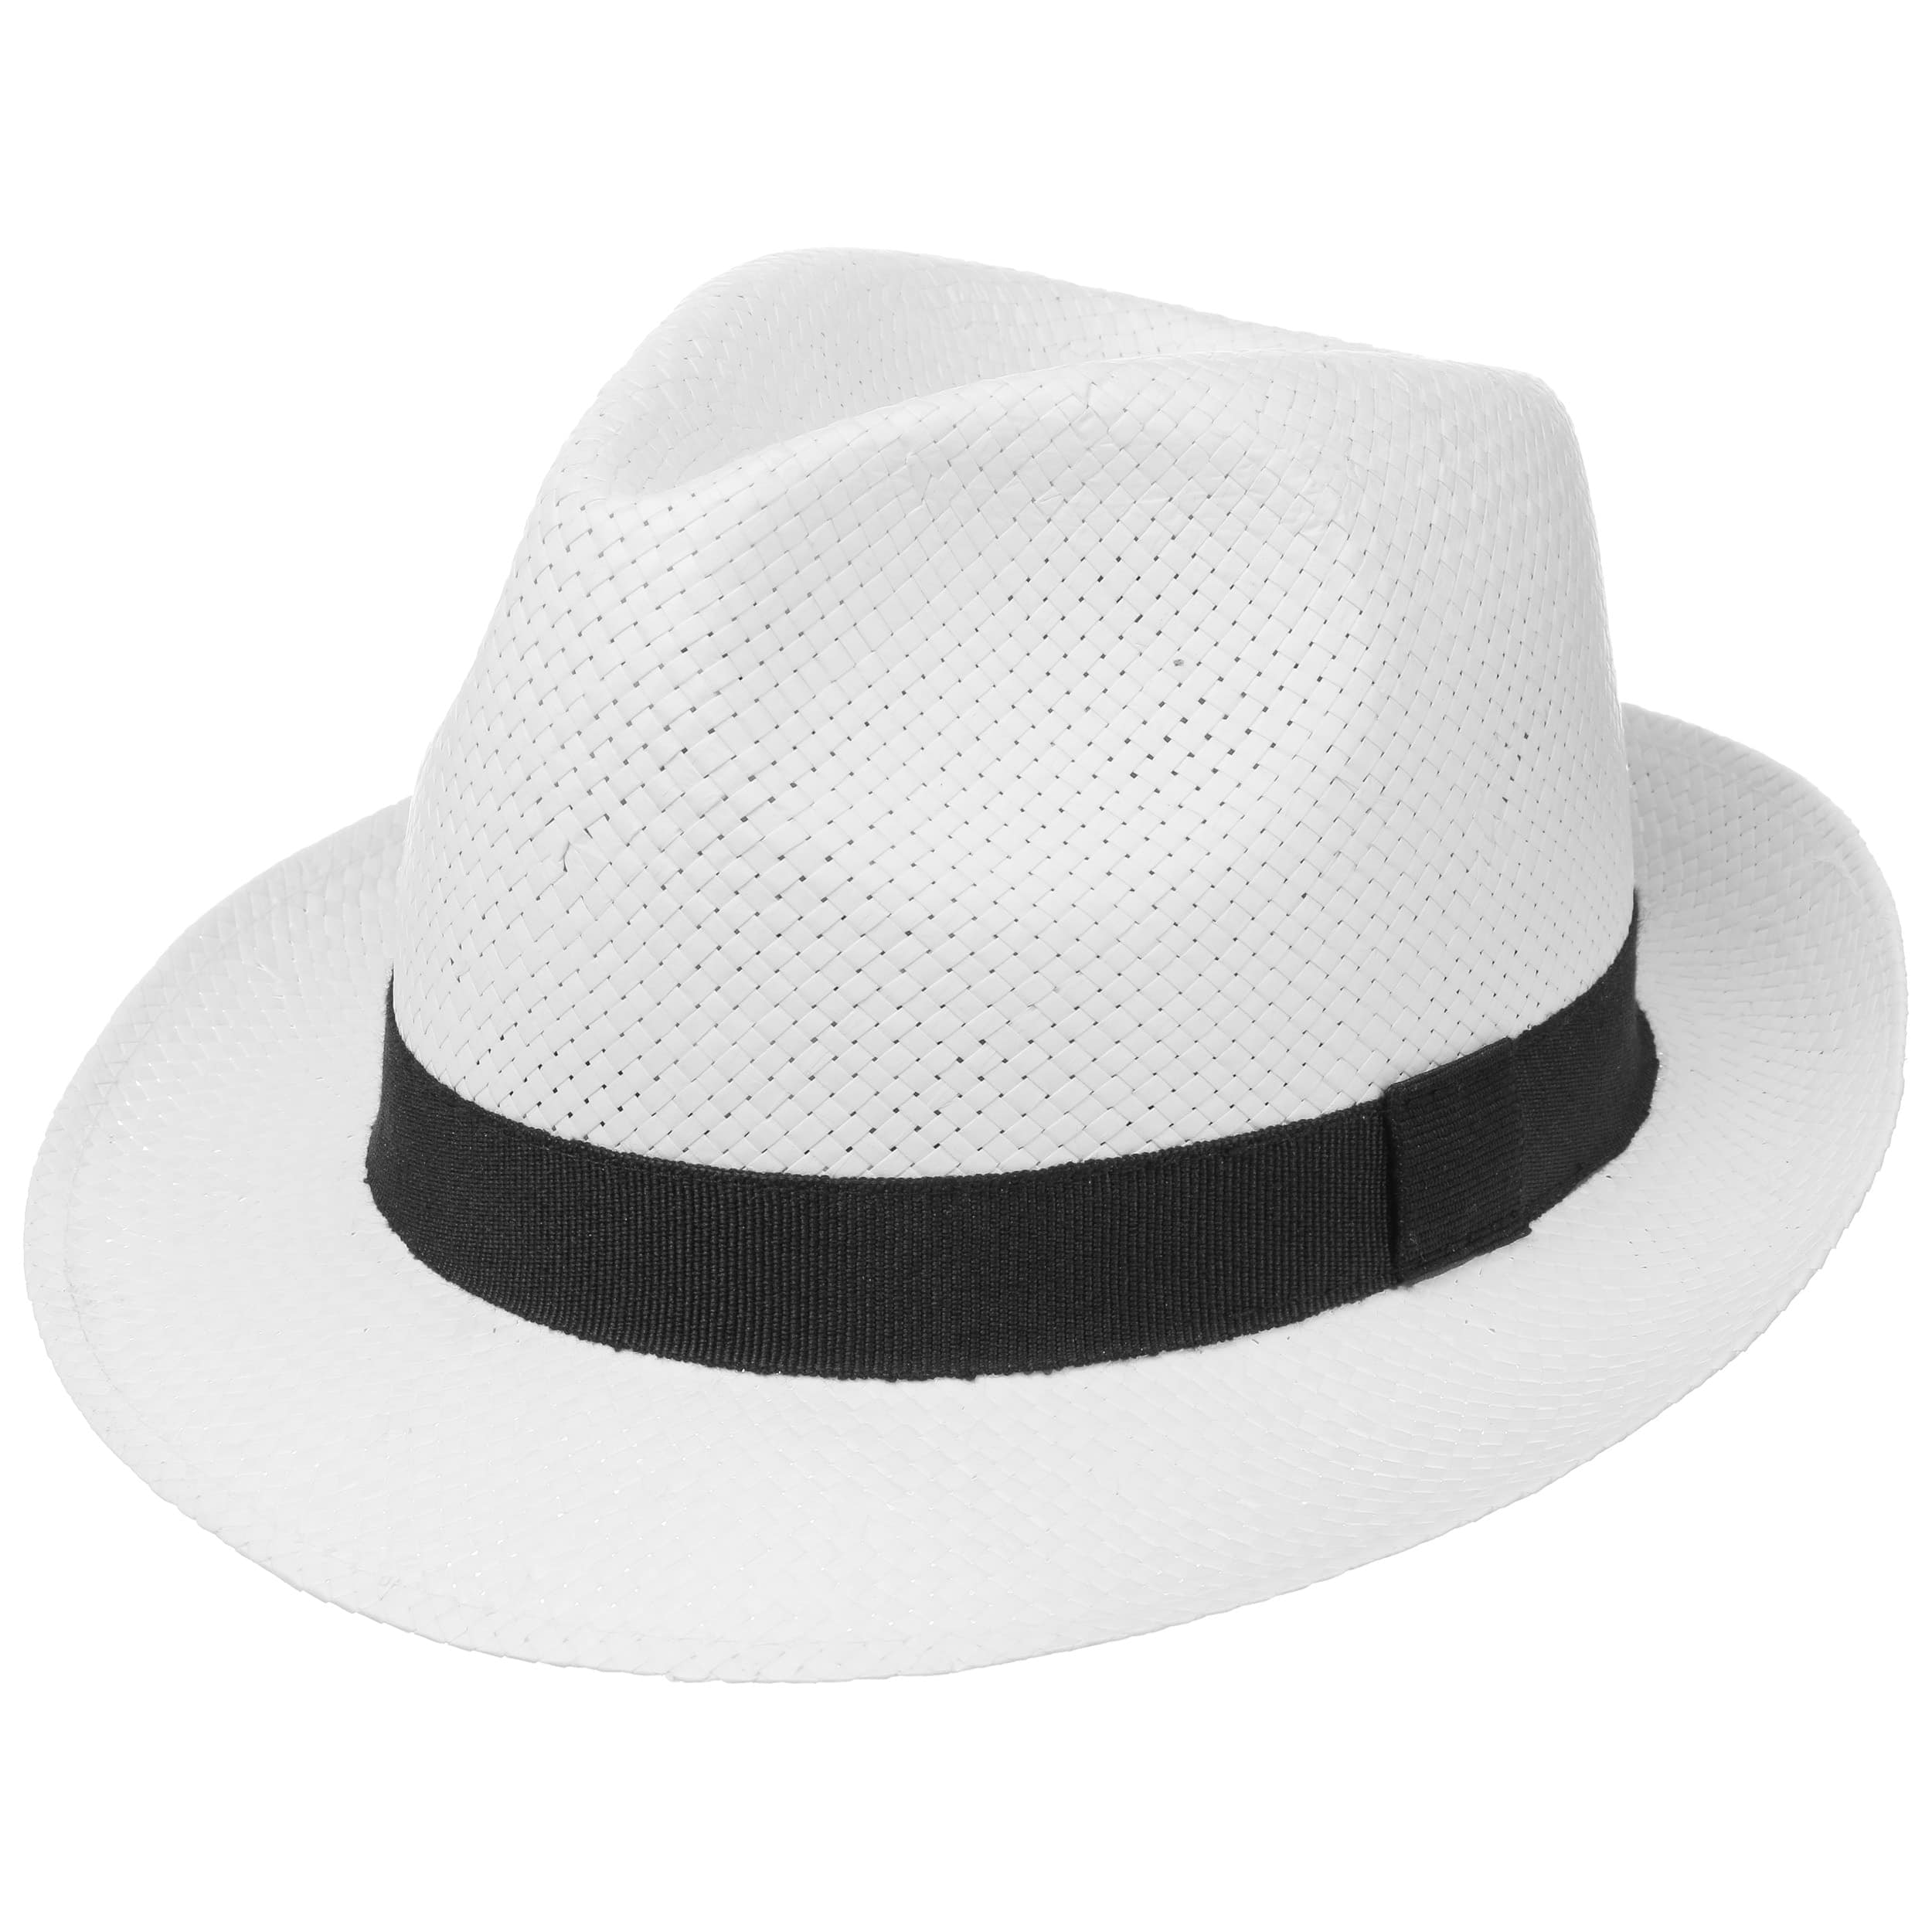 468f2e3d6e6c6c White City Trilby Hat by Lipodo - 17,95 £